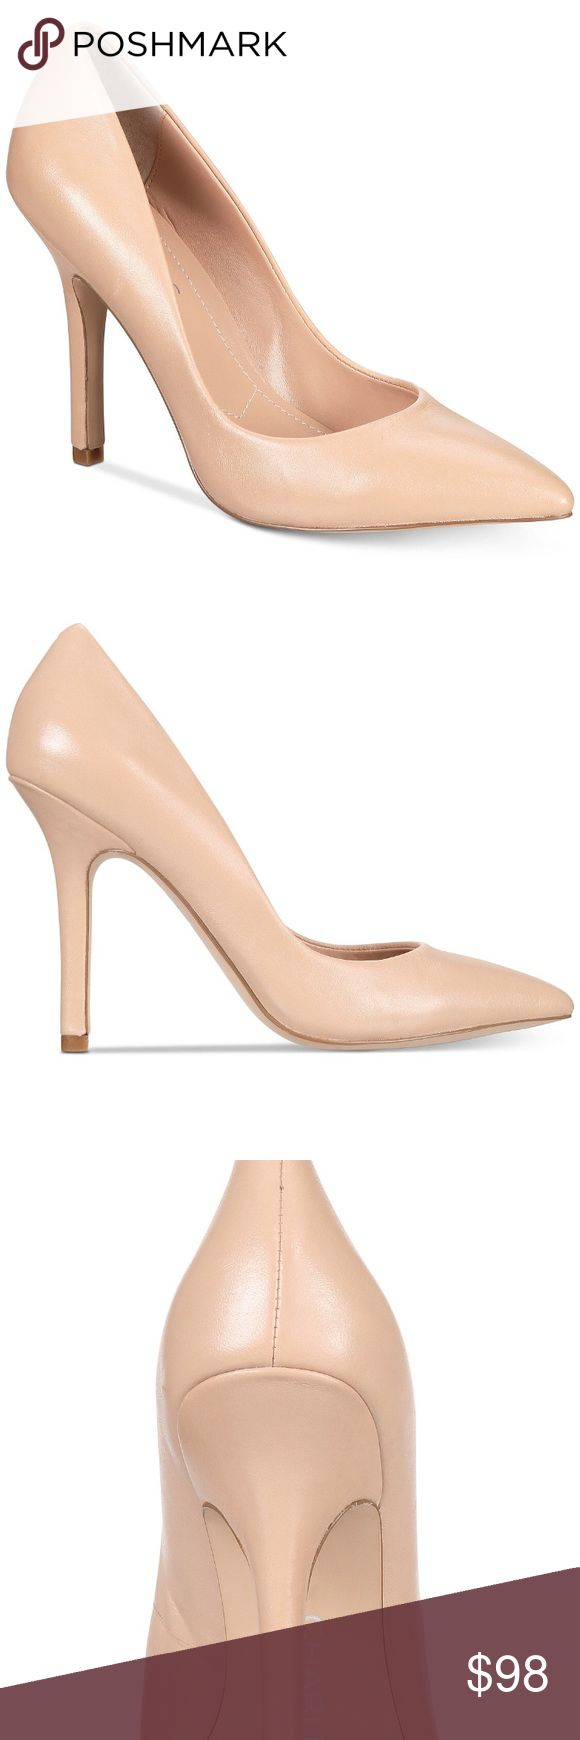 Charles David Nude Leather Maxx Pumps *new in box *produce details in one of the photos *no flaws  make me an offer! or click bundle and i can send you at a personal offer!  any questions? be sure to comment below! Charles David Shoes Heels